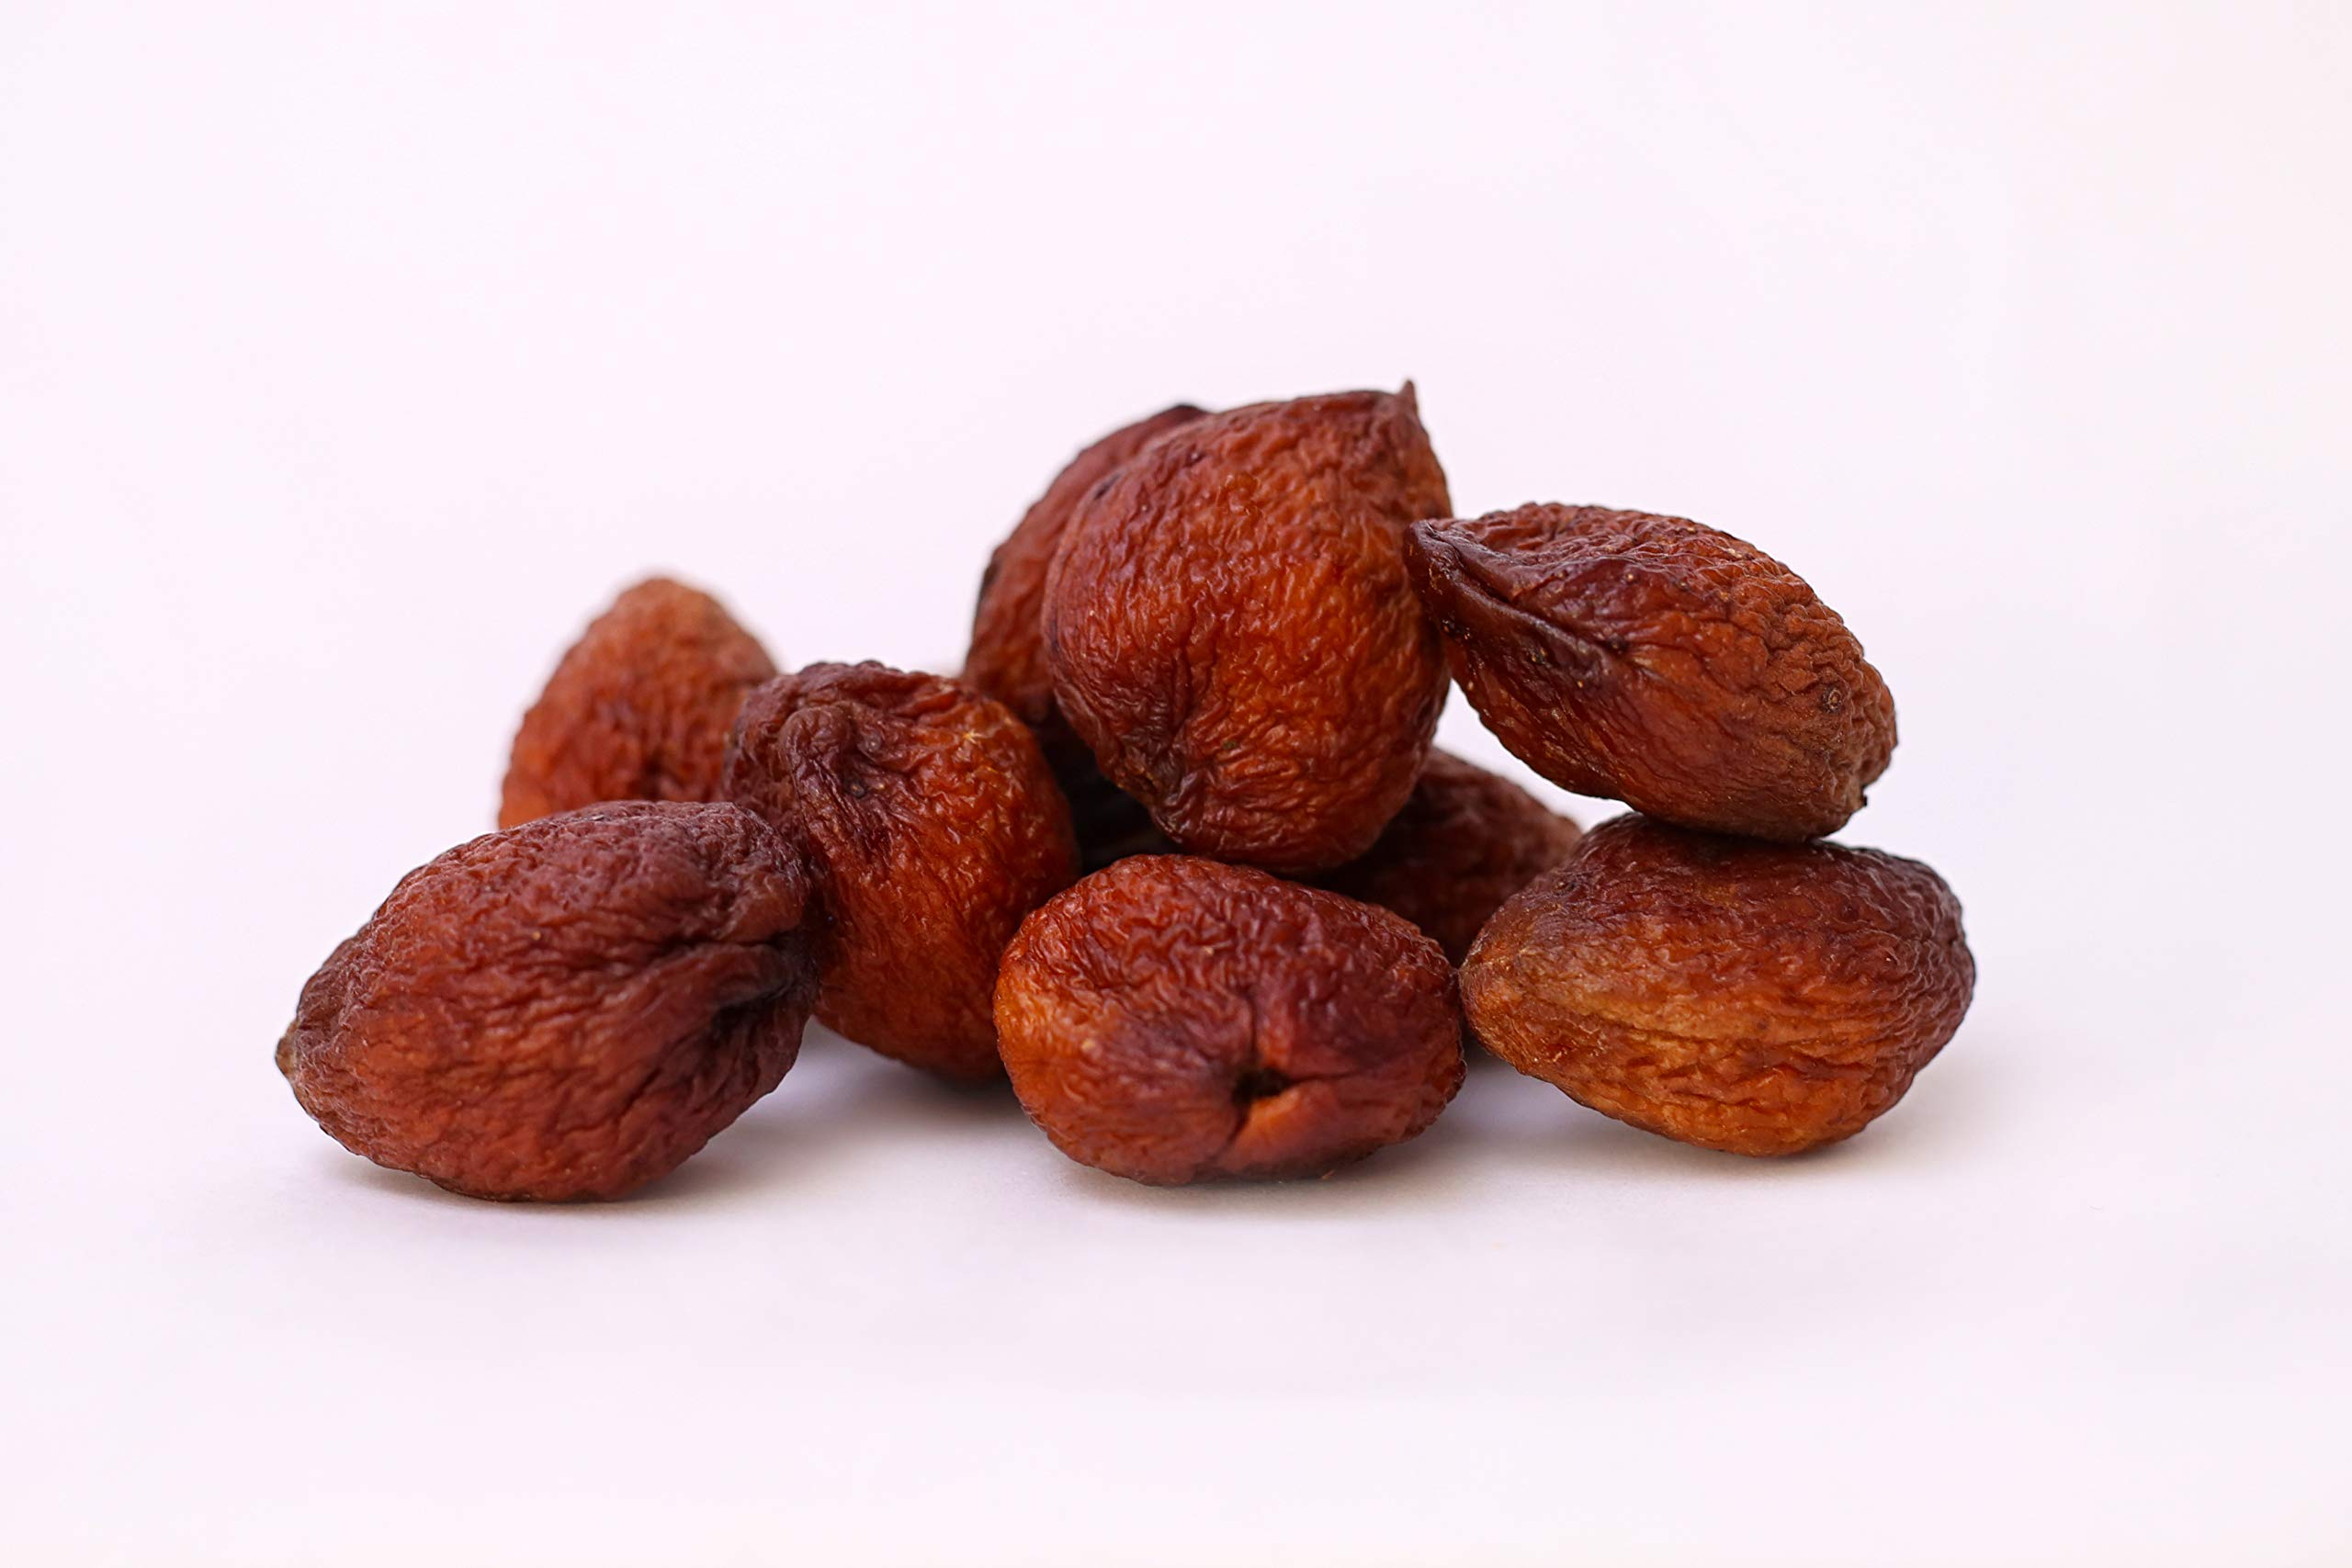 Arashan Apricots - Delicious Dried Apricot Fruit, Organic | MOST Delectable Dry Apricot In The World! Grown In The Ferghana Valley In Kyrgyzstan - Apricots Dried | Sundried, Unpitted, No Sugar Added